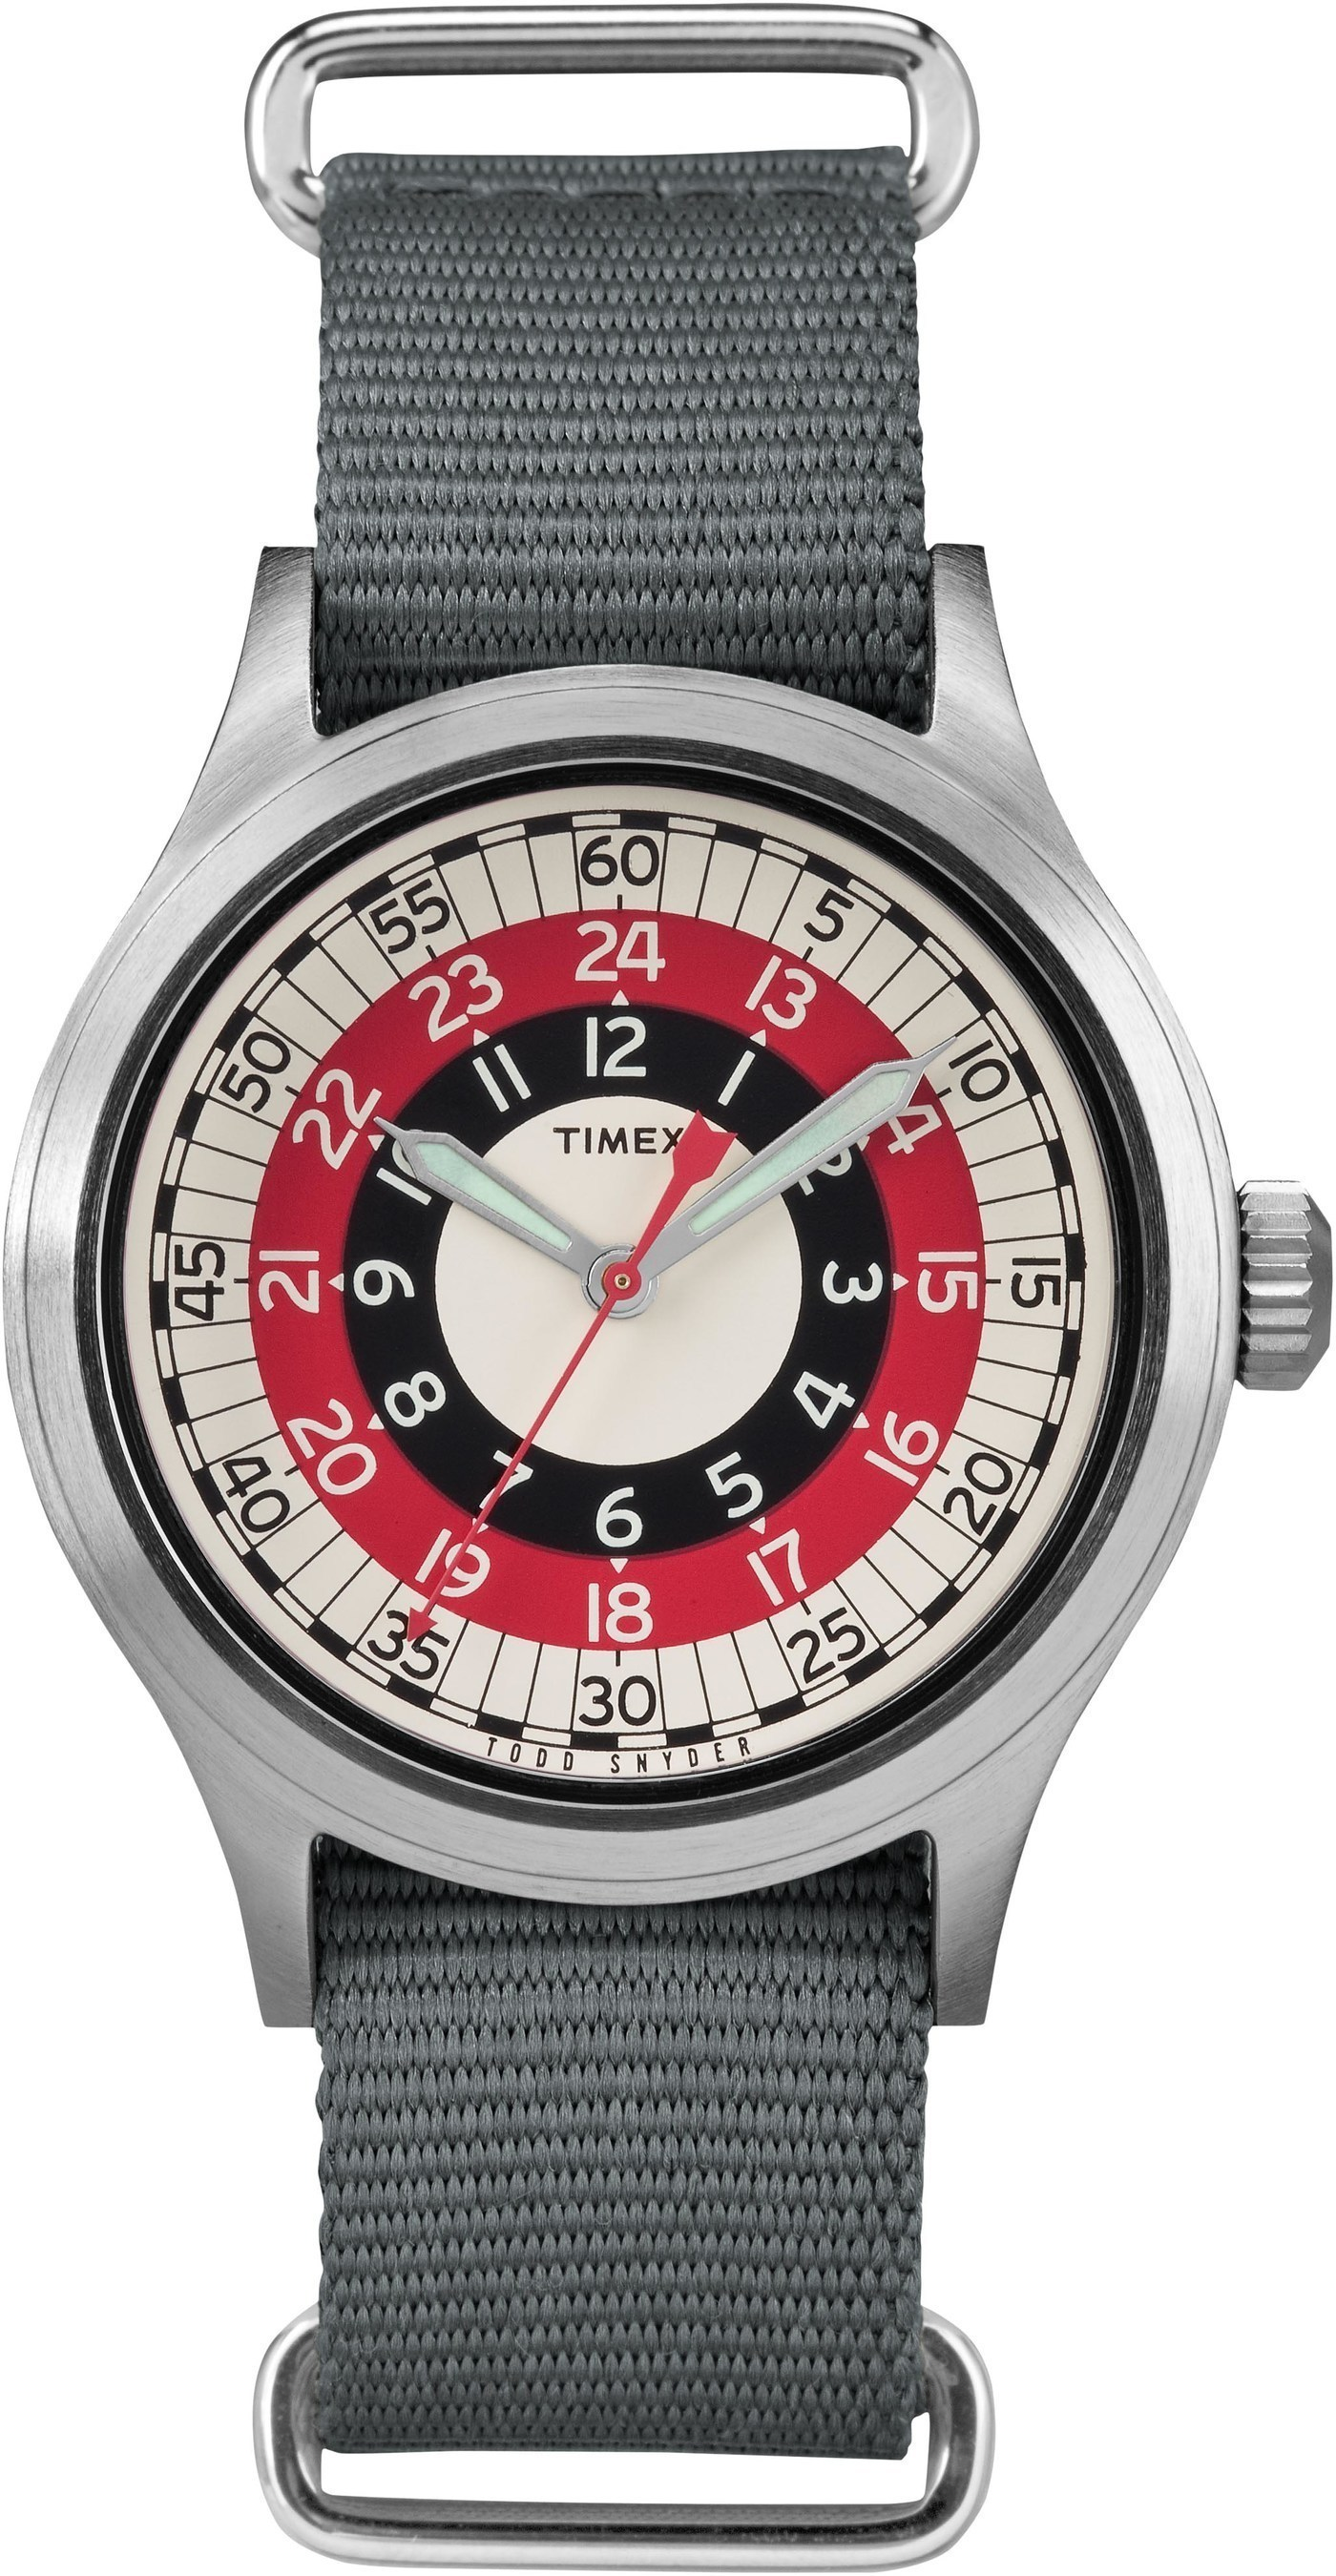 Timex X Todd Snyder Mod WatchRetail Price: $138Available in the US at ToddSnyder.com